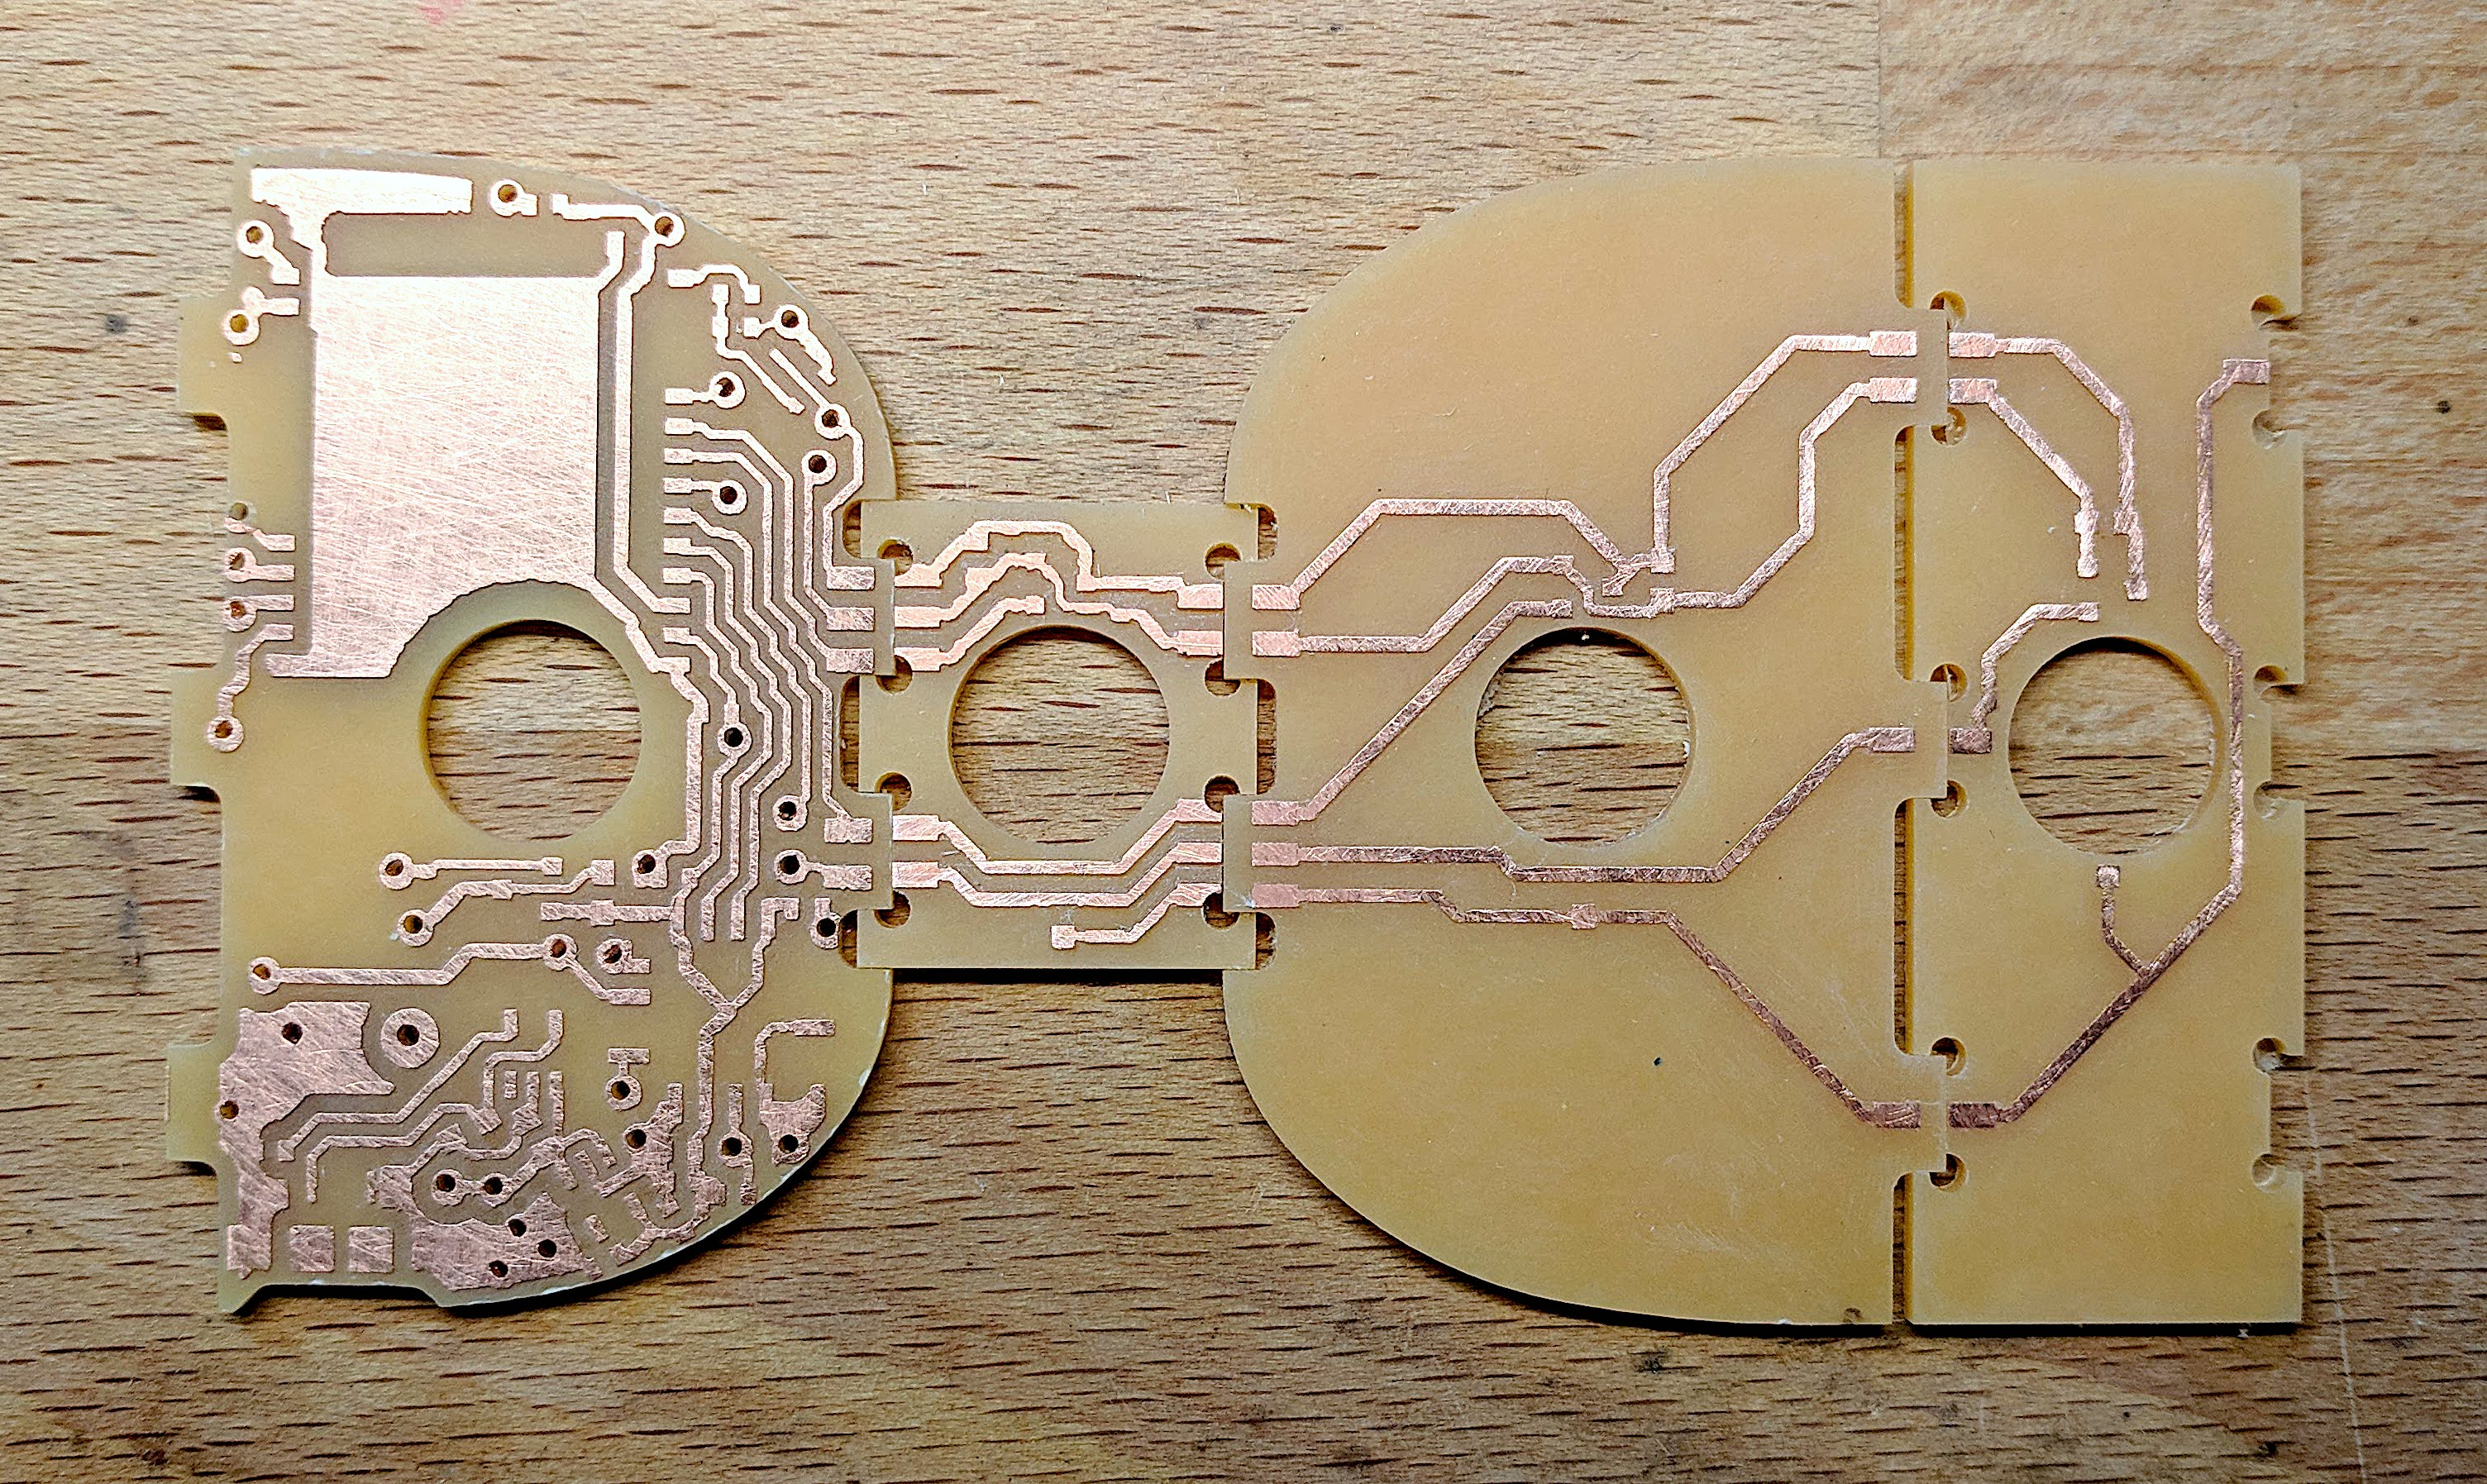 Slotted PCBs fit together to make the sides